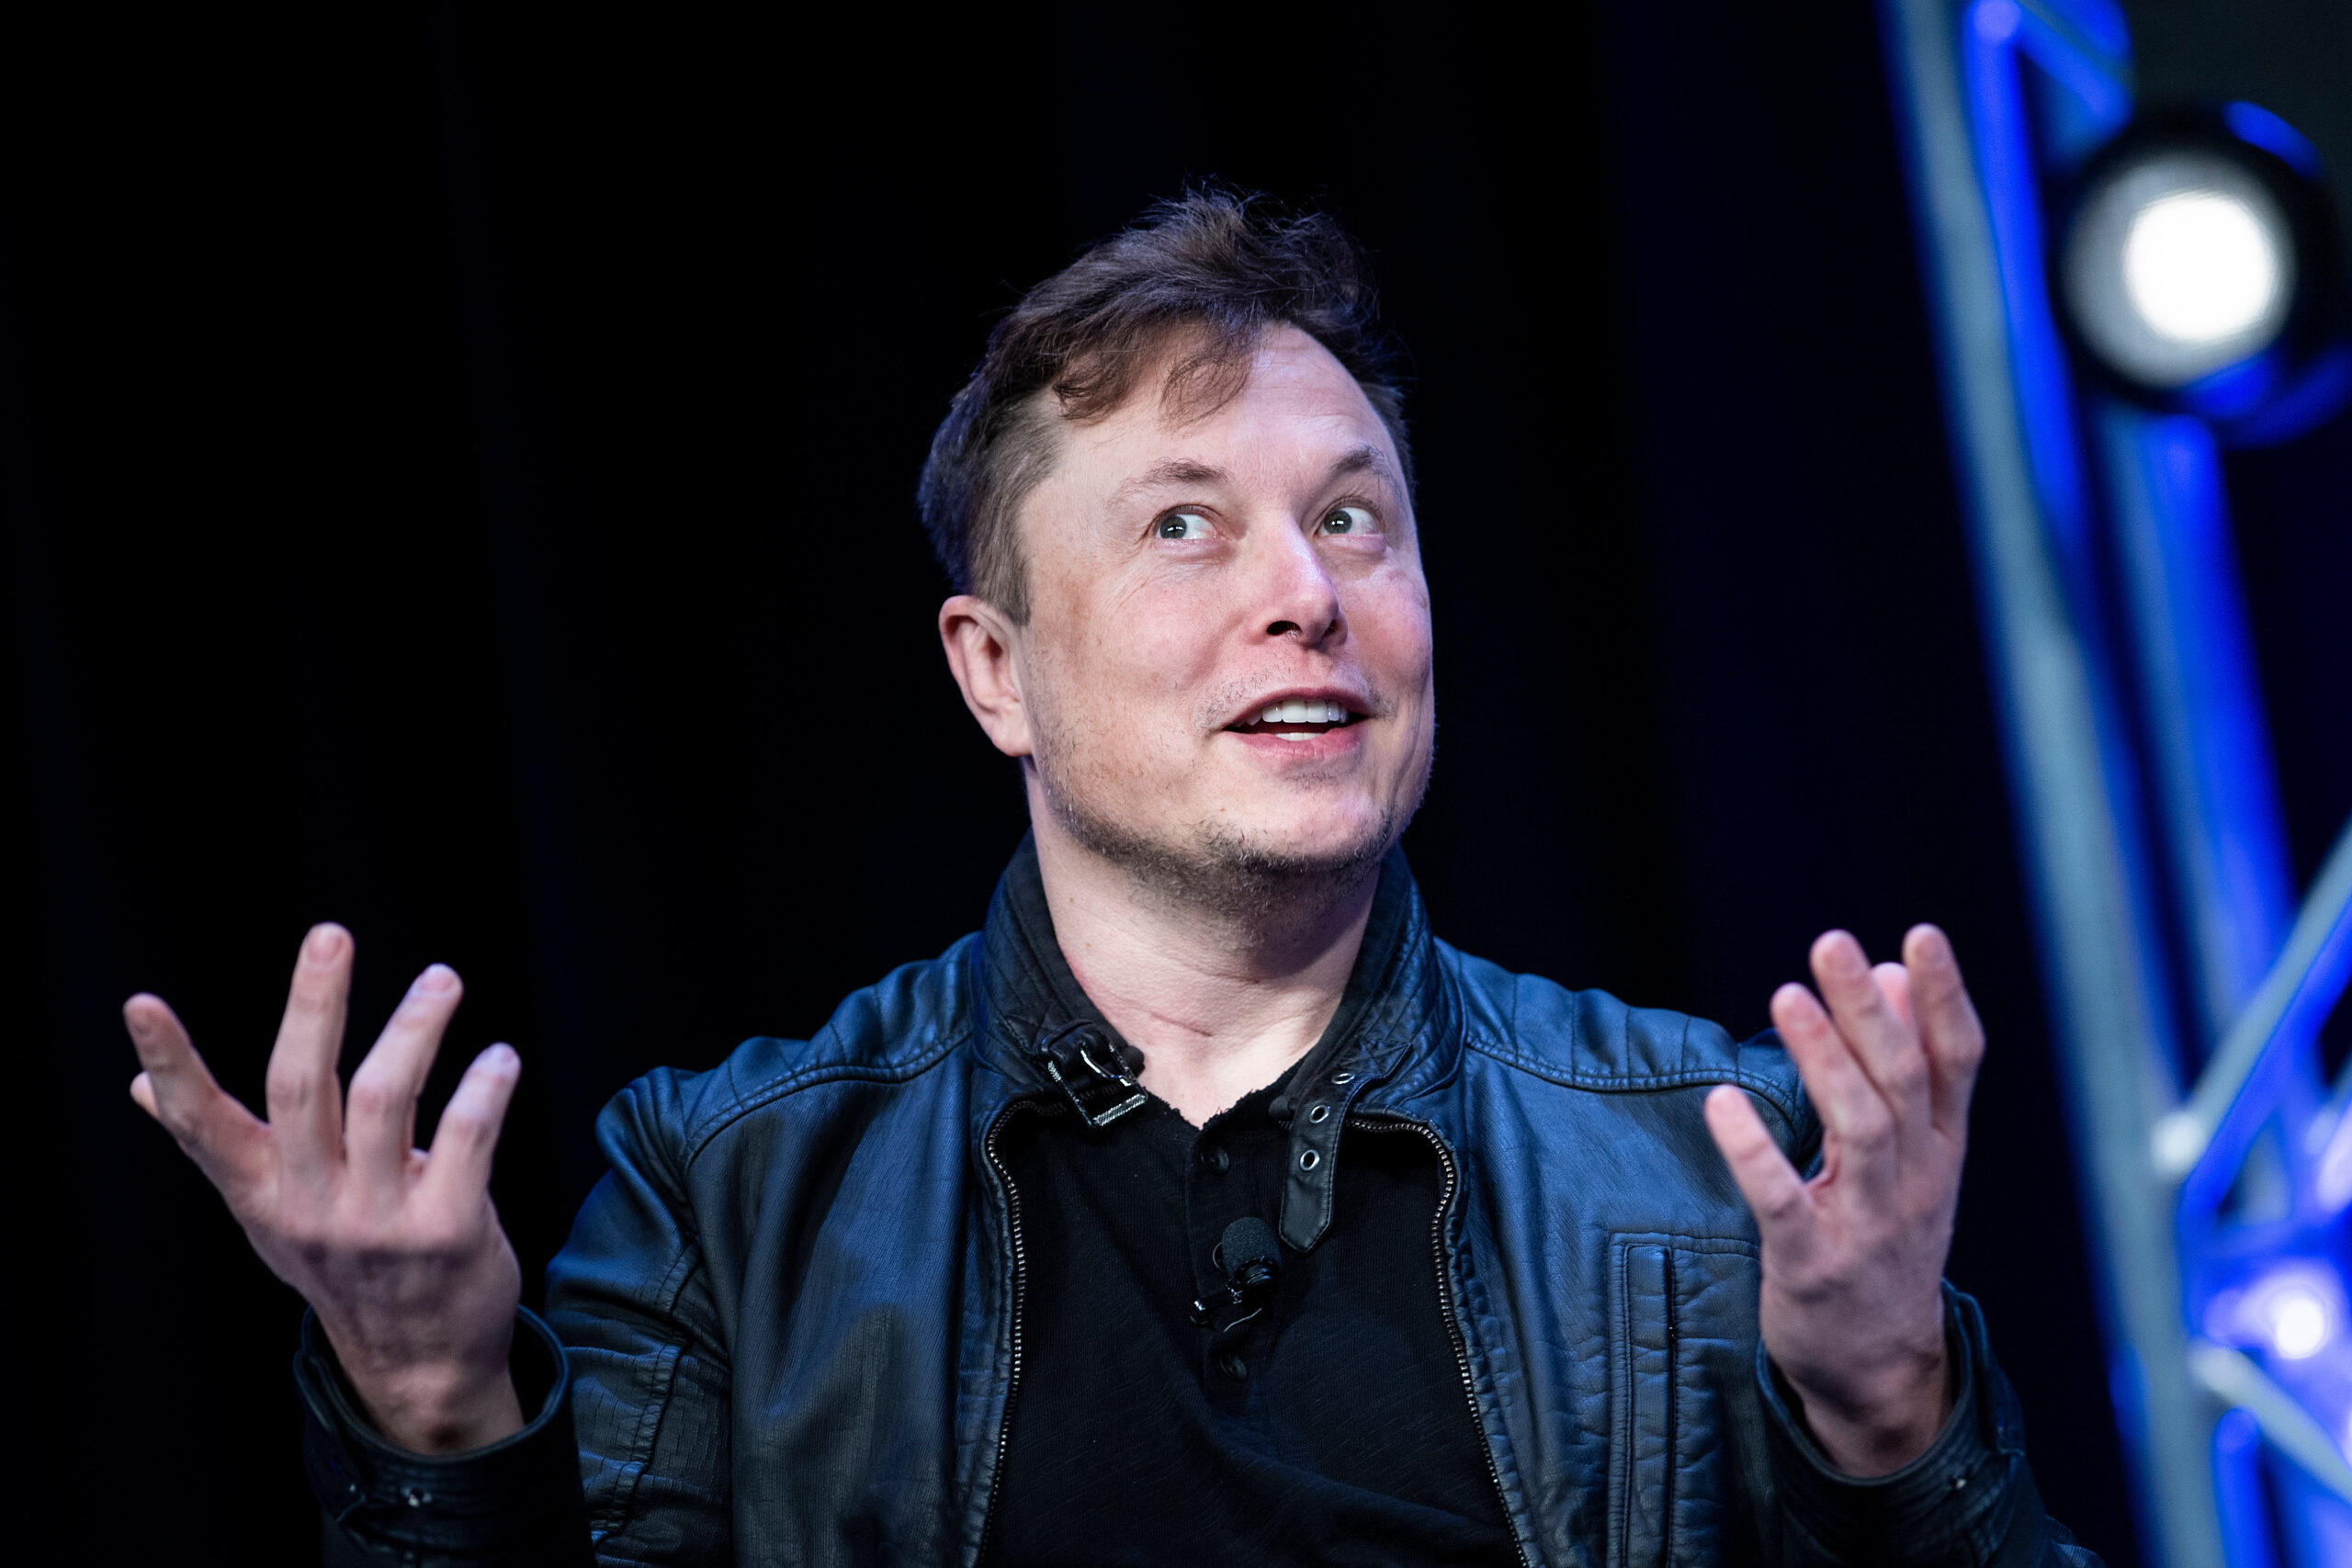 Elon Musk speaks and gestures in front of a black background